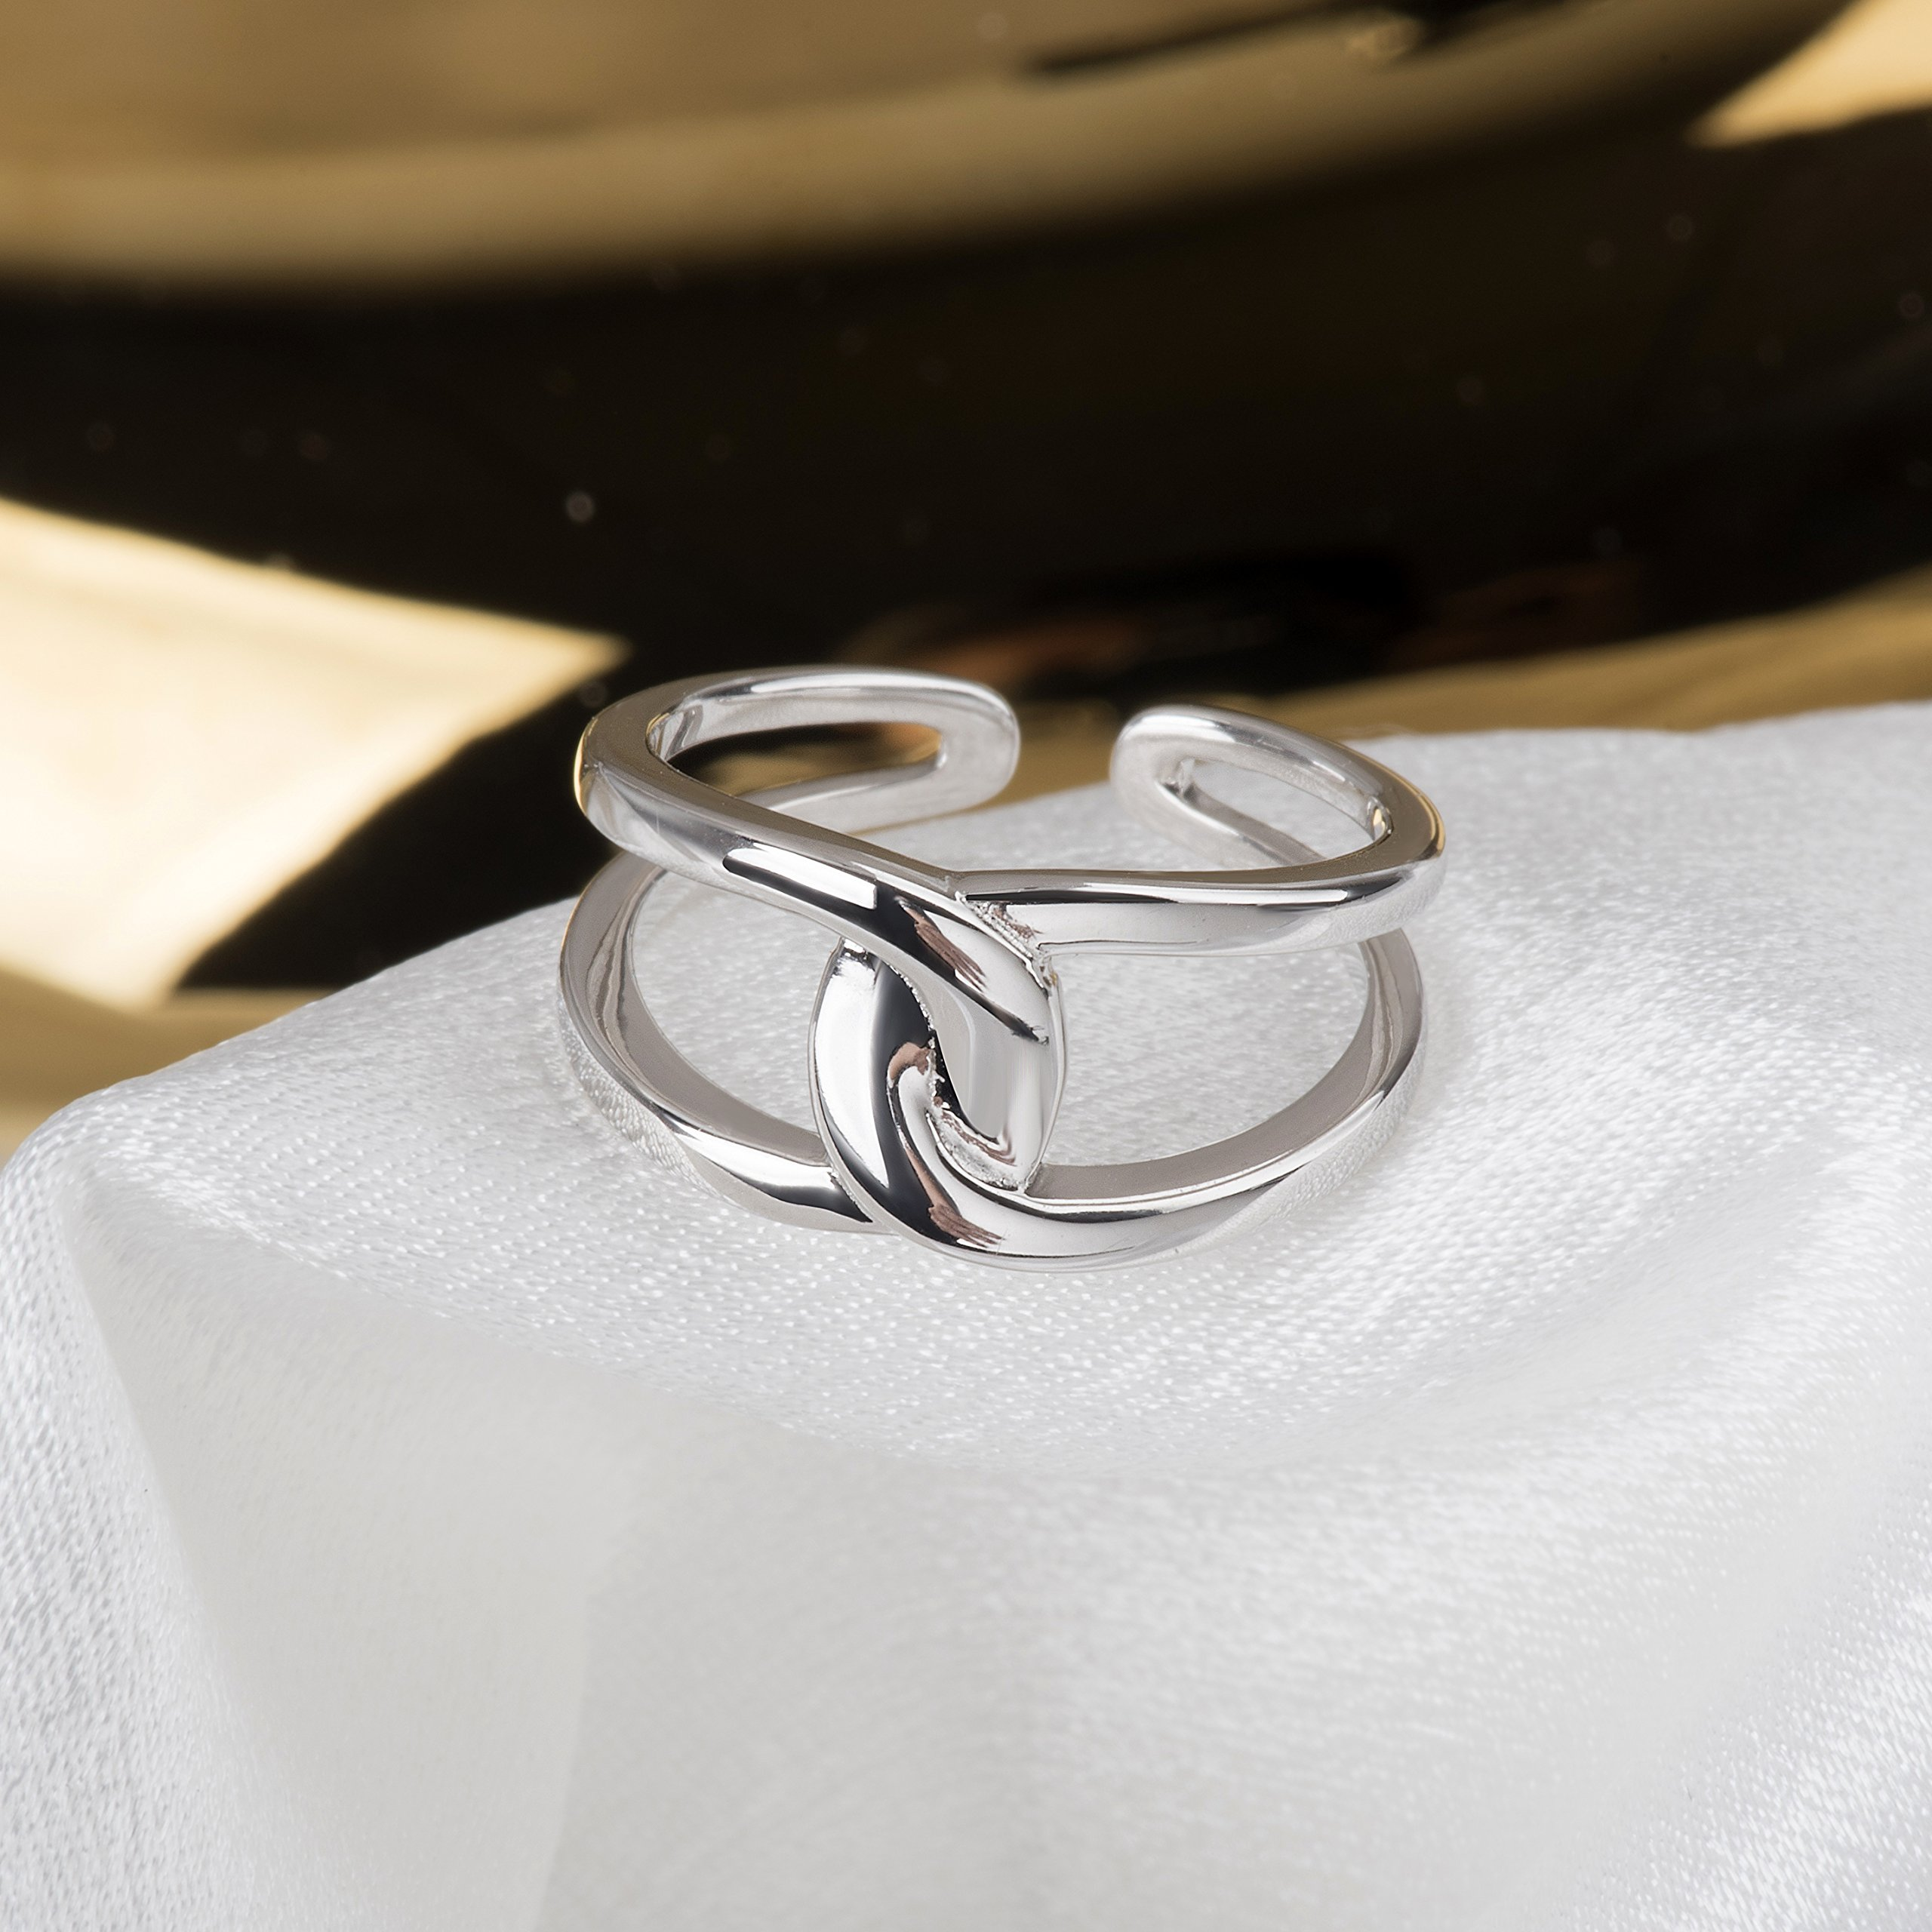 Fonsalette Gold Plated Infinity Ring Sterling Silver Open Twist Ring Two Band Ring (silver) by Fonsalette (Image #5)